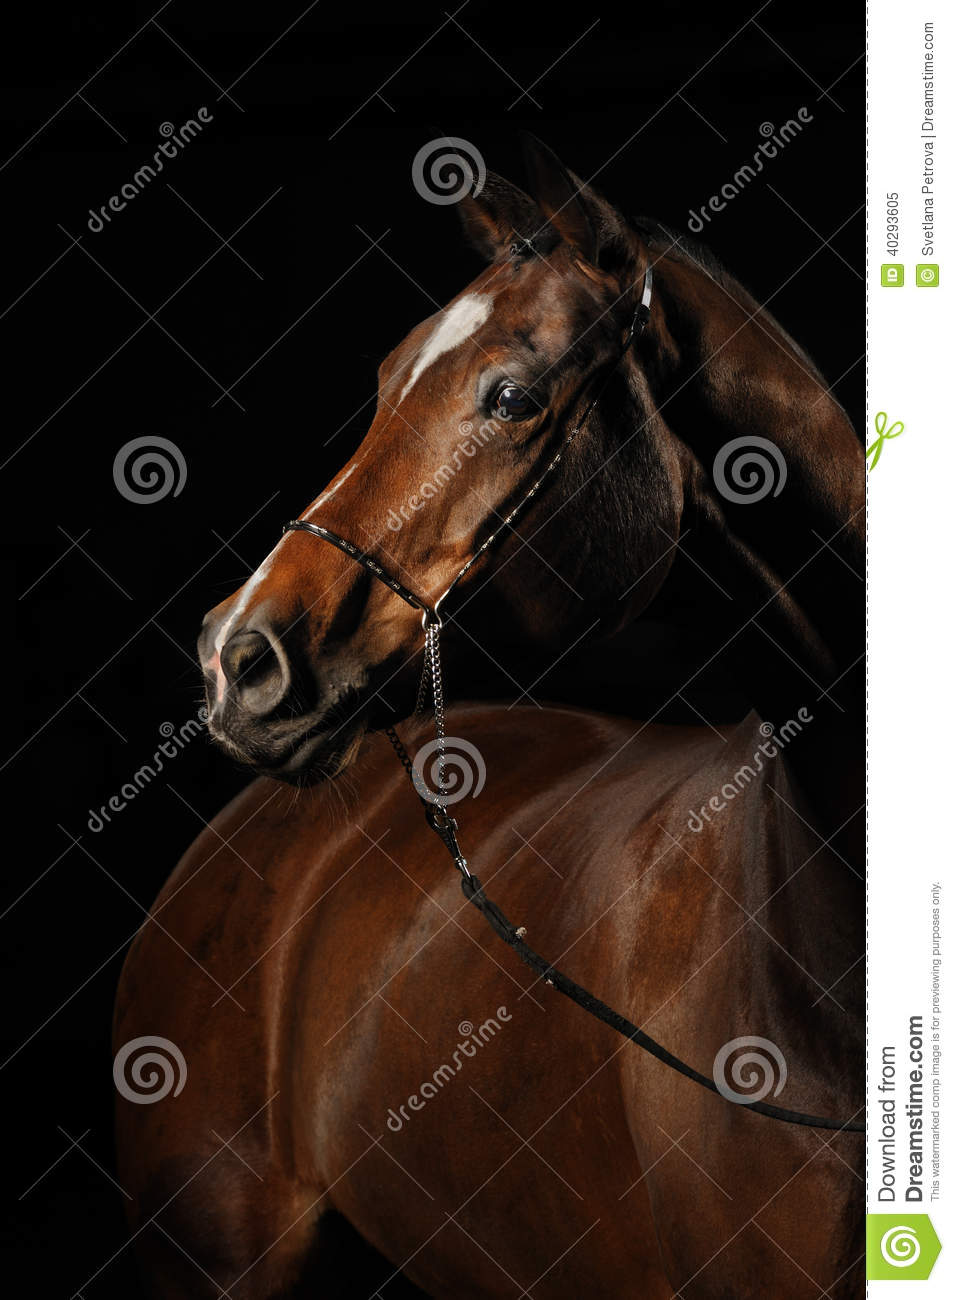 Portrait of a bay horse on the black background